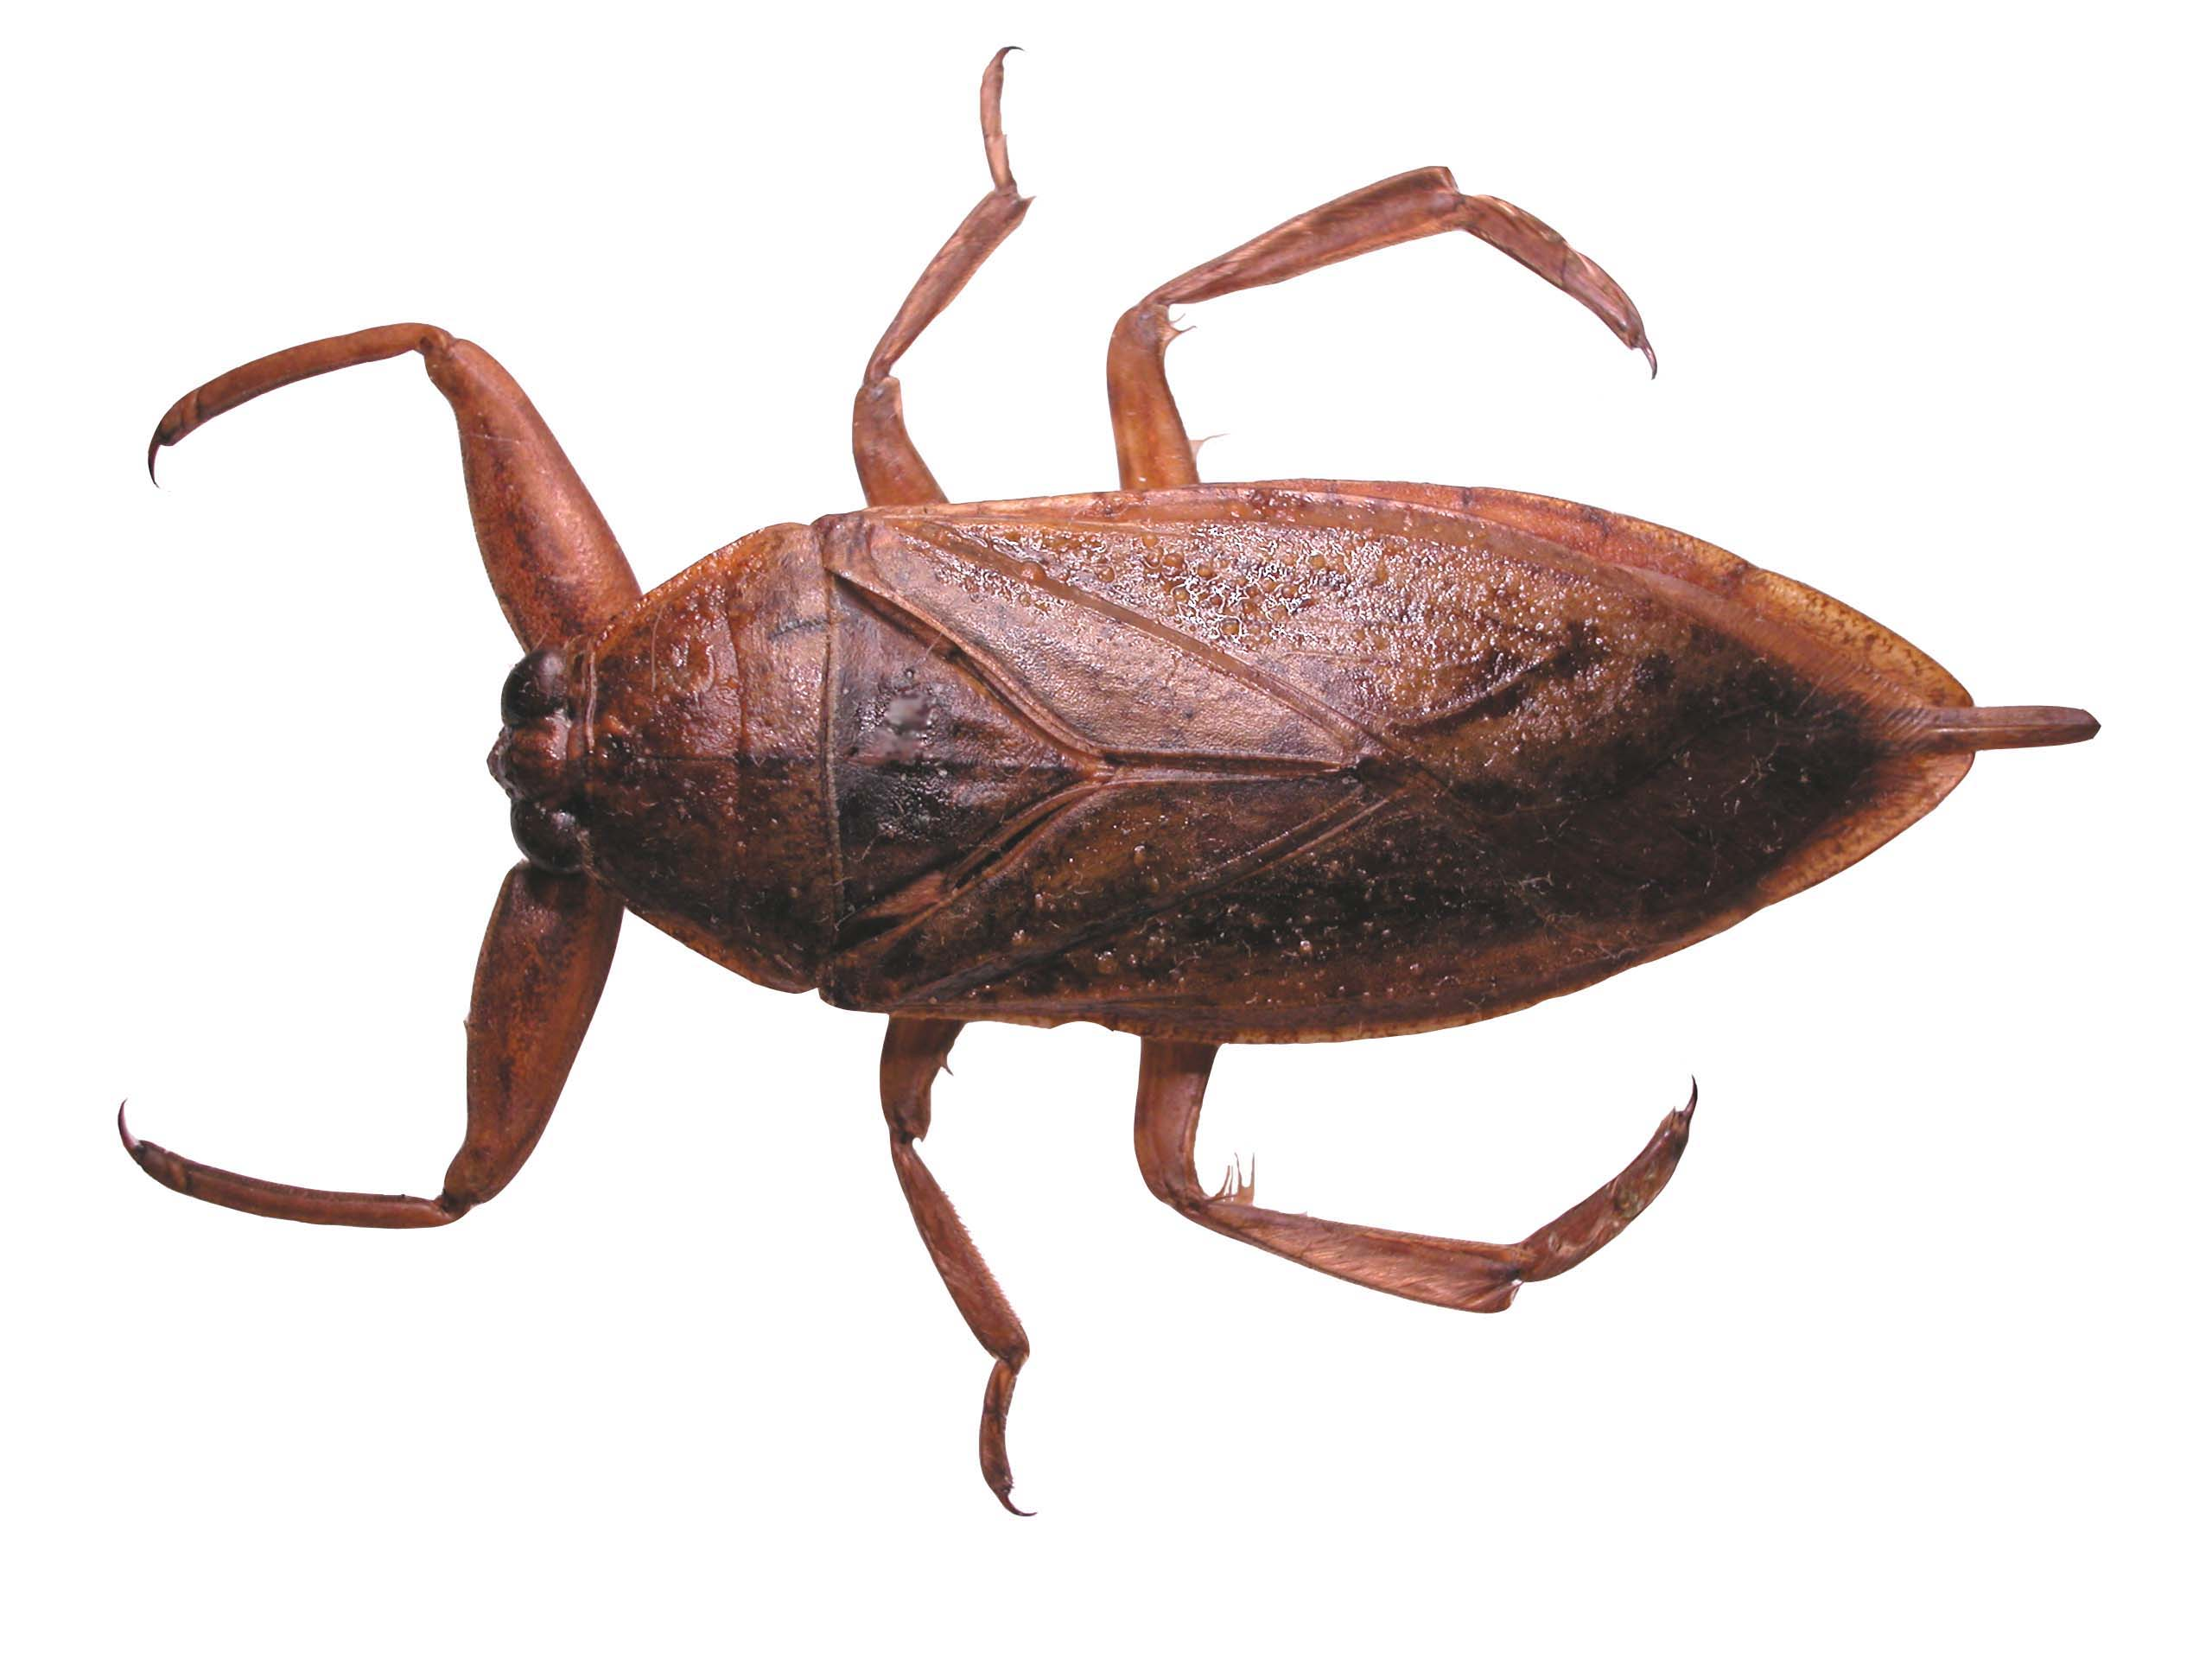 Source: Giant Water Bug by FreeLearning